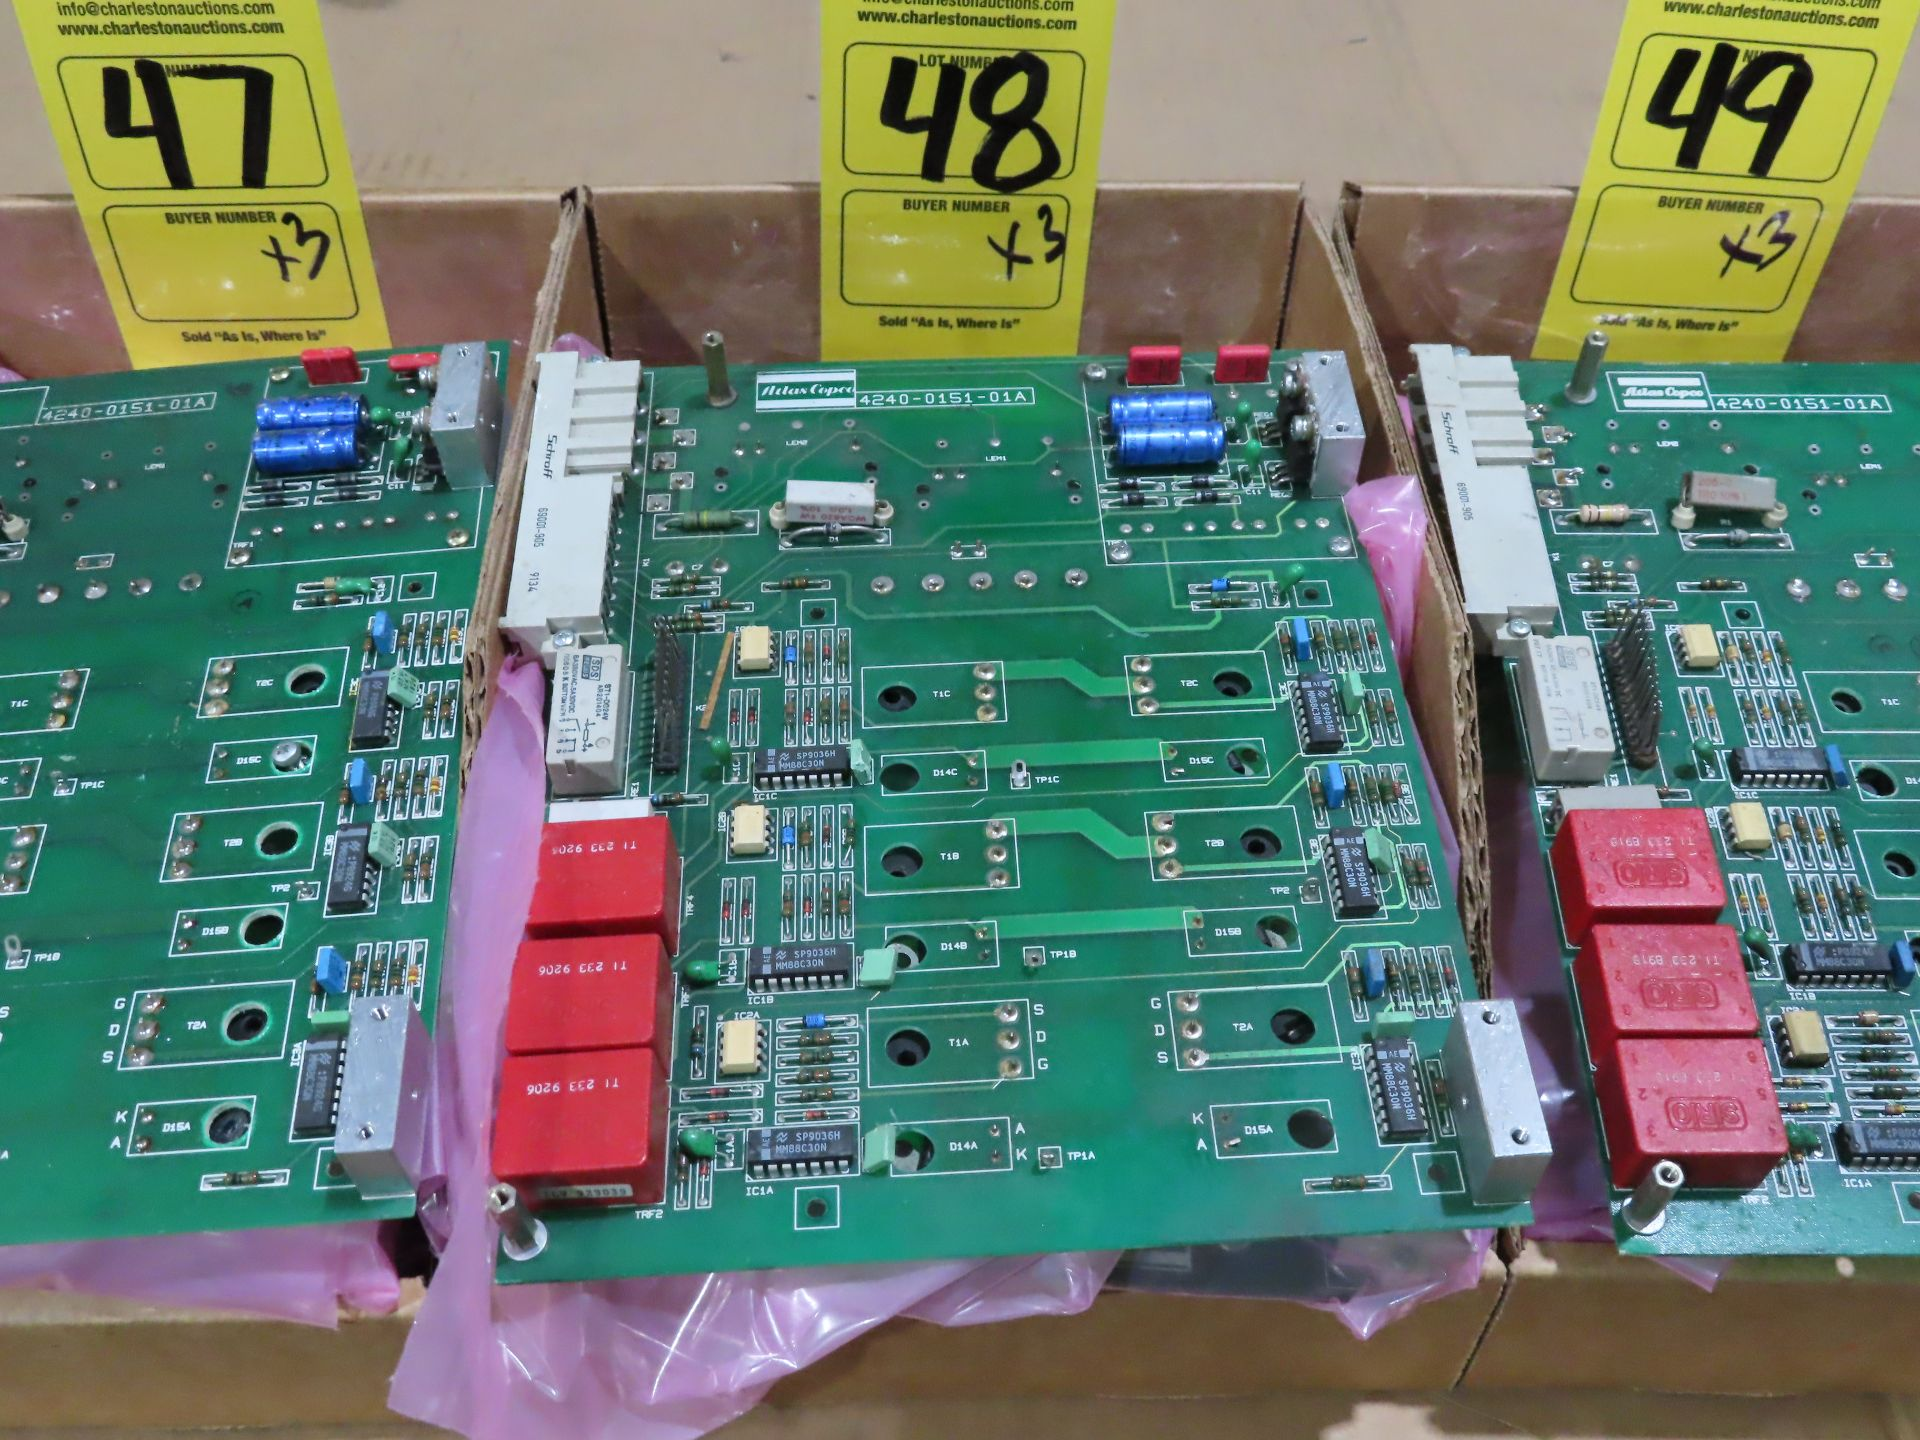 Lot 48 - Qty 3 Altas Copco model 4240-0151-01A replacement servo amp replacement board, as always, with